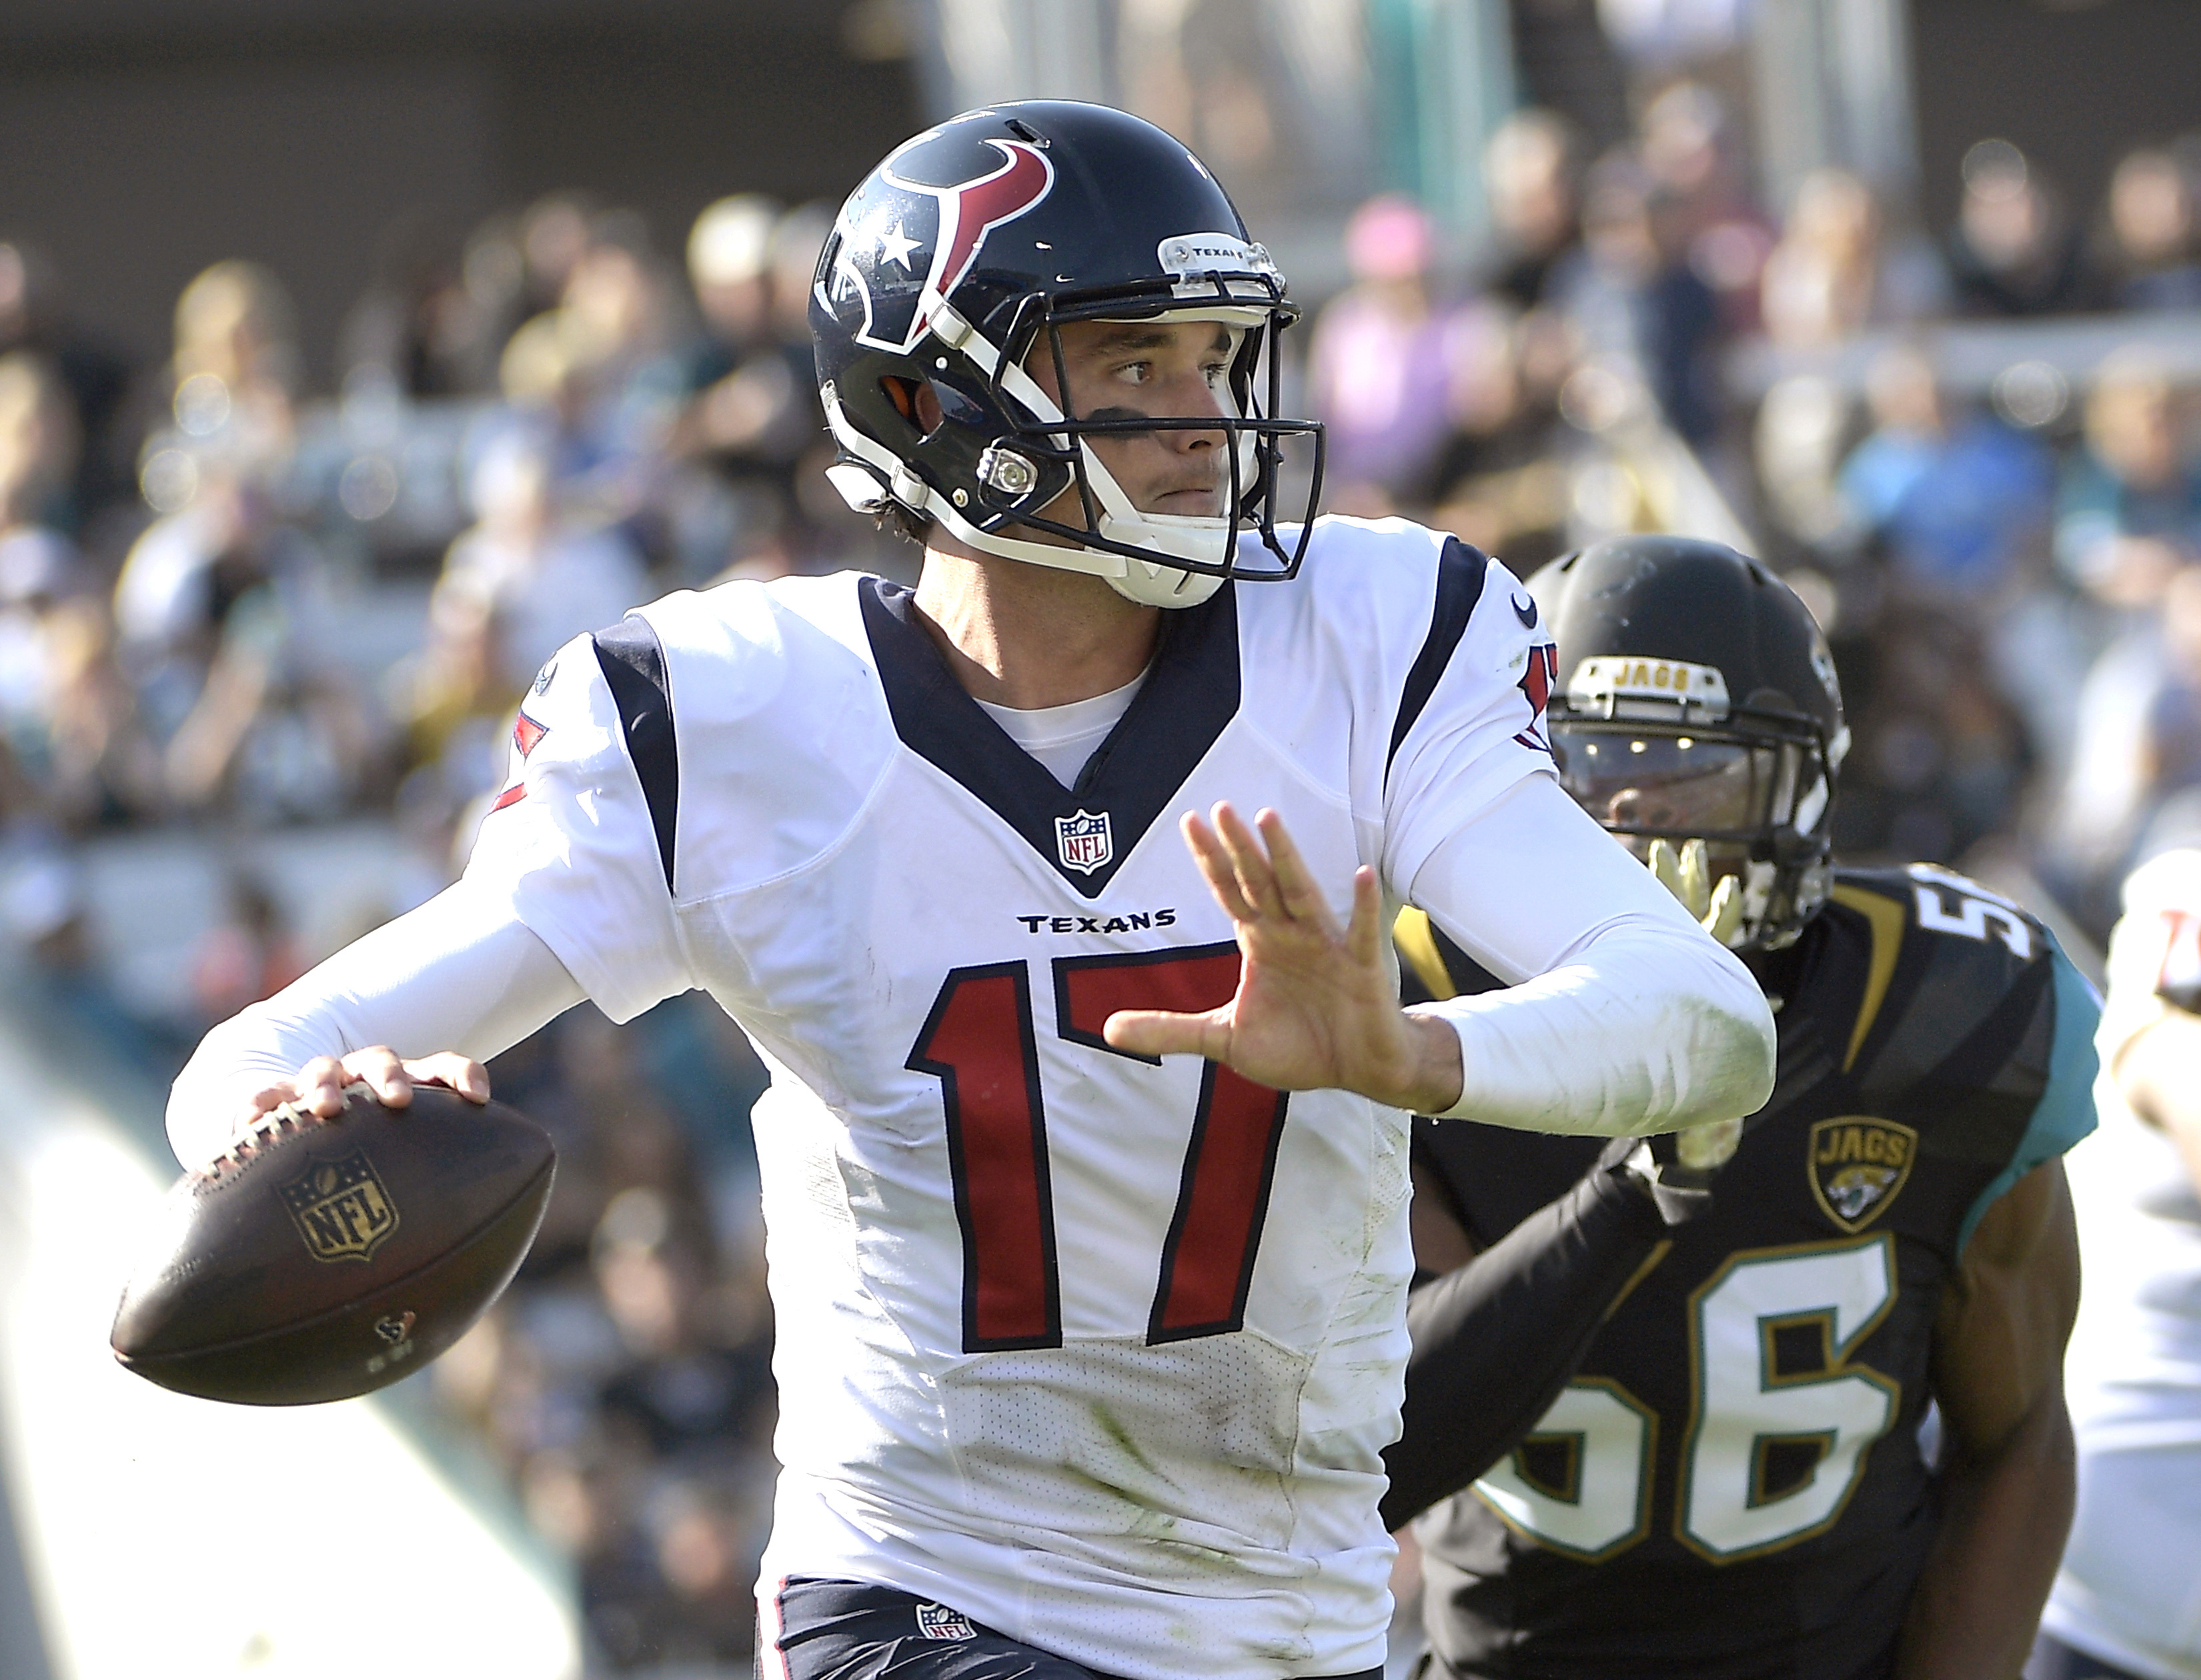 Houston Texans quarterback Brock Osweiler (17) scrambles out of the pocket as Jacksonville Jaguars defensive end Dante Fowler (56) gives chase during the second half of an NFL football game in Jacksonville, Fla., Sunday, Nov. 13, 2016. (AP Photo/Phelan M.